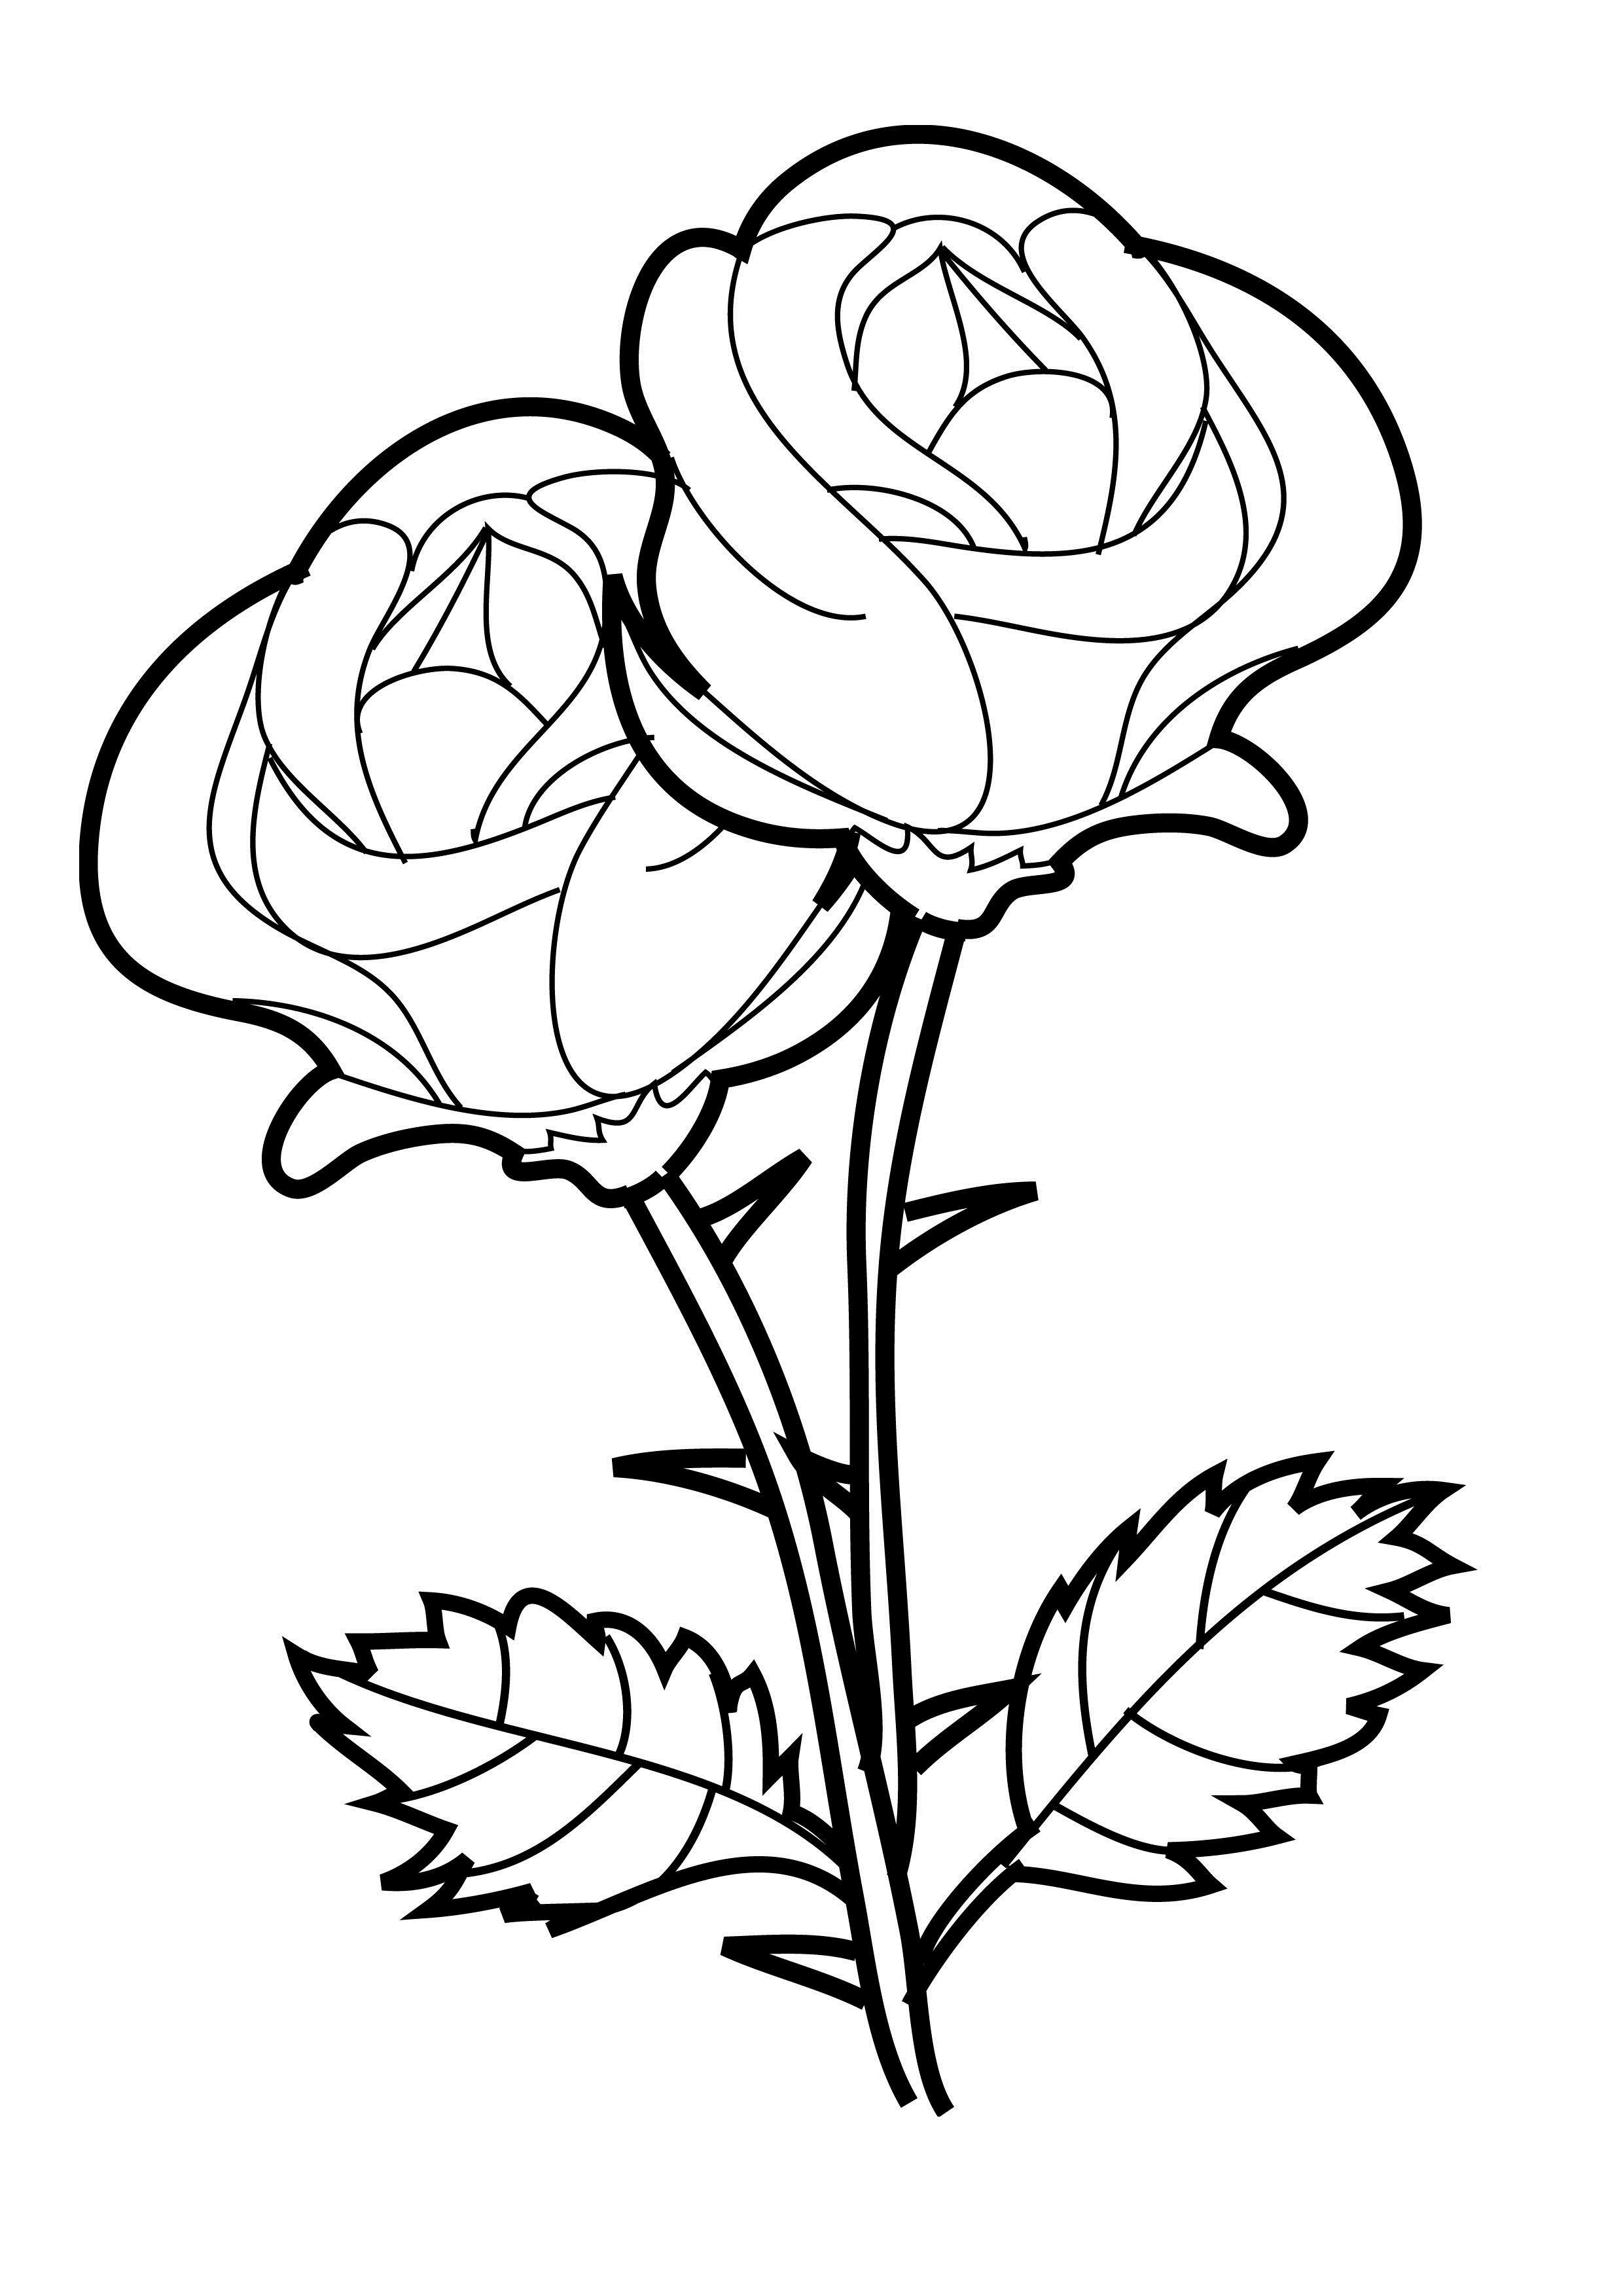 pictures of flowers to color free printable roses coloring pages for kids color pictures of to flowers